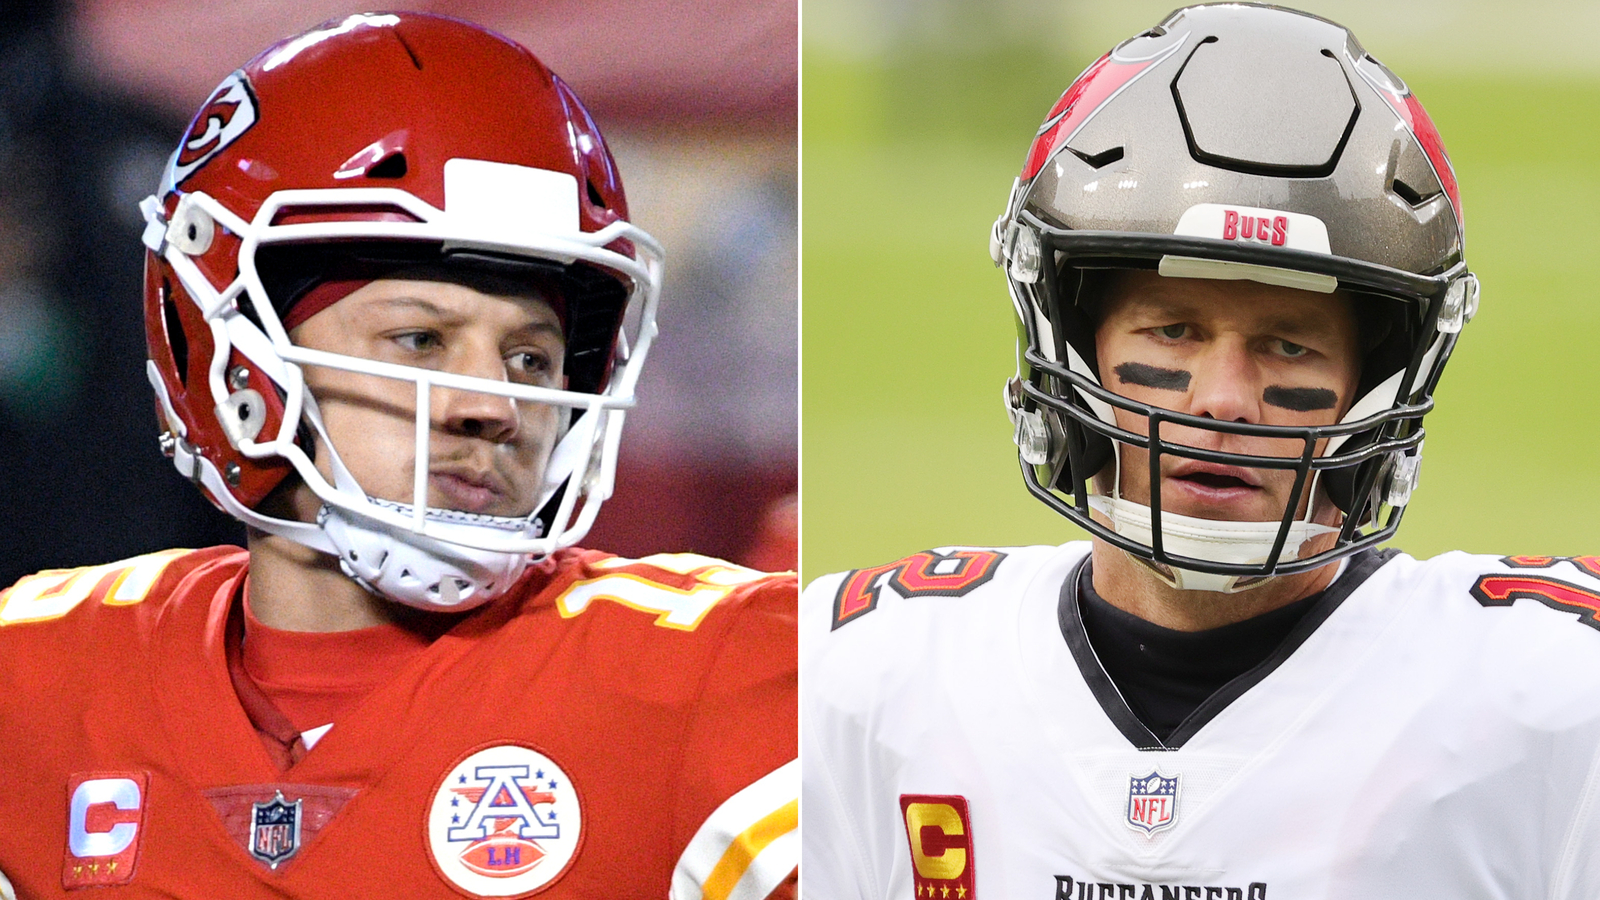 'Like LeBron and Jordan playing in the Finals': It's Tom Brady versus Patrick Mahomes in the Super Bowl